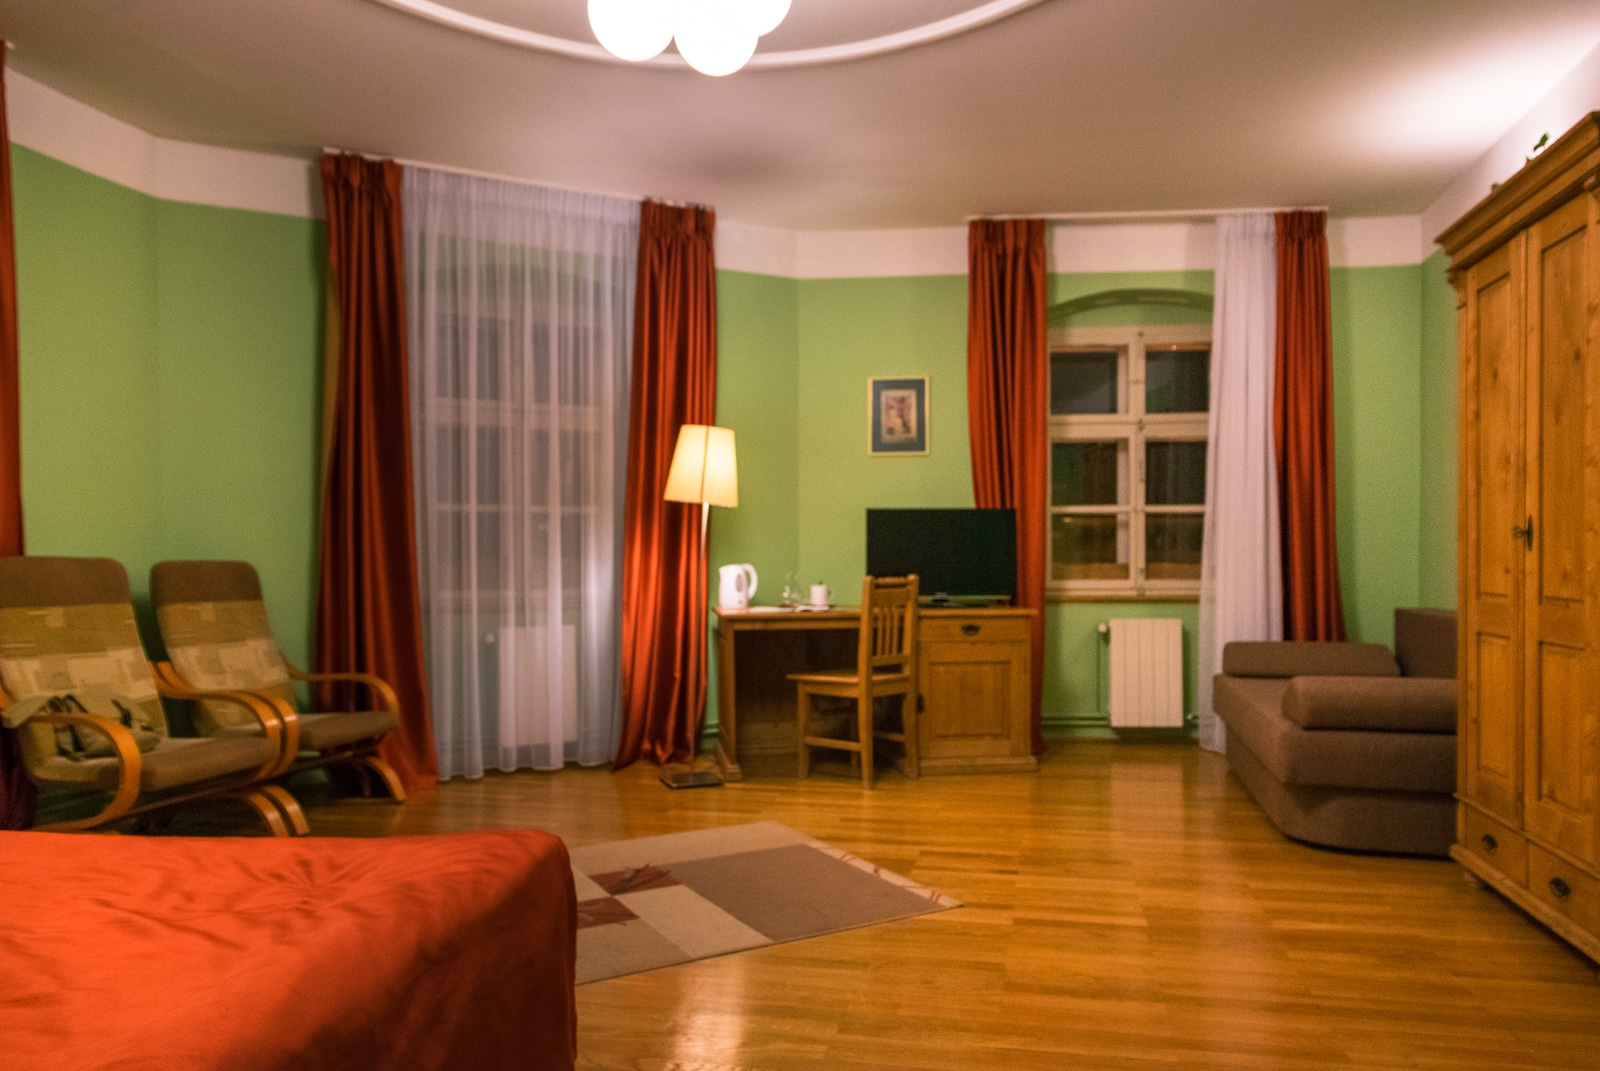 Hotel Casa Luxembourg Room